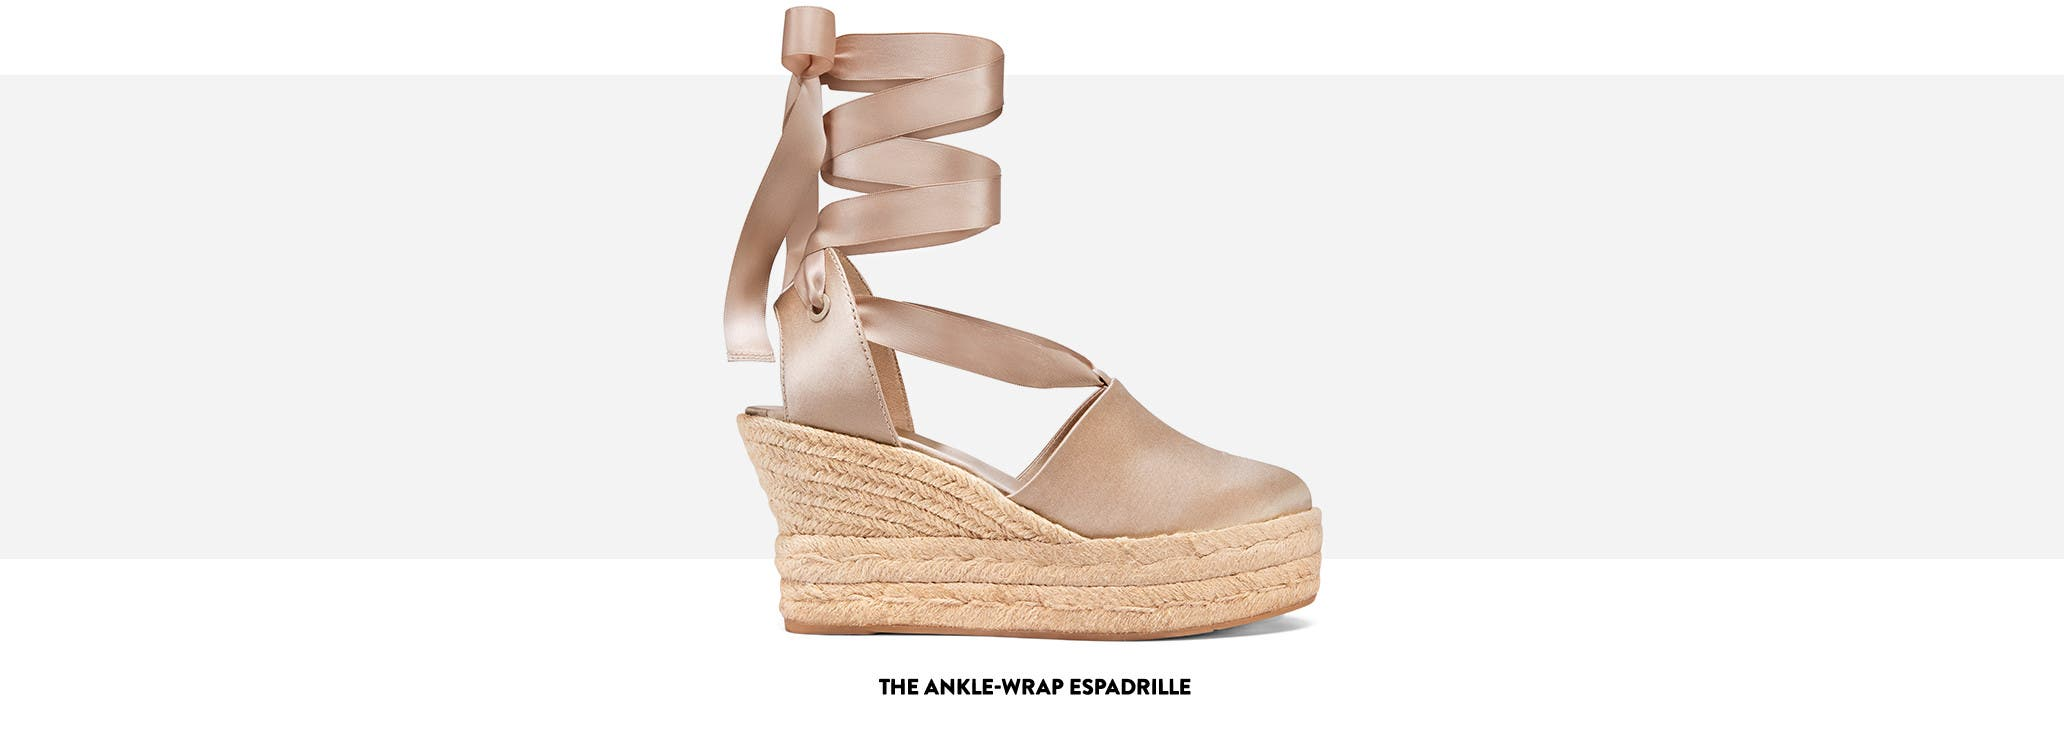 The Ankle-Wrap Espadrille